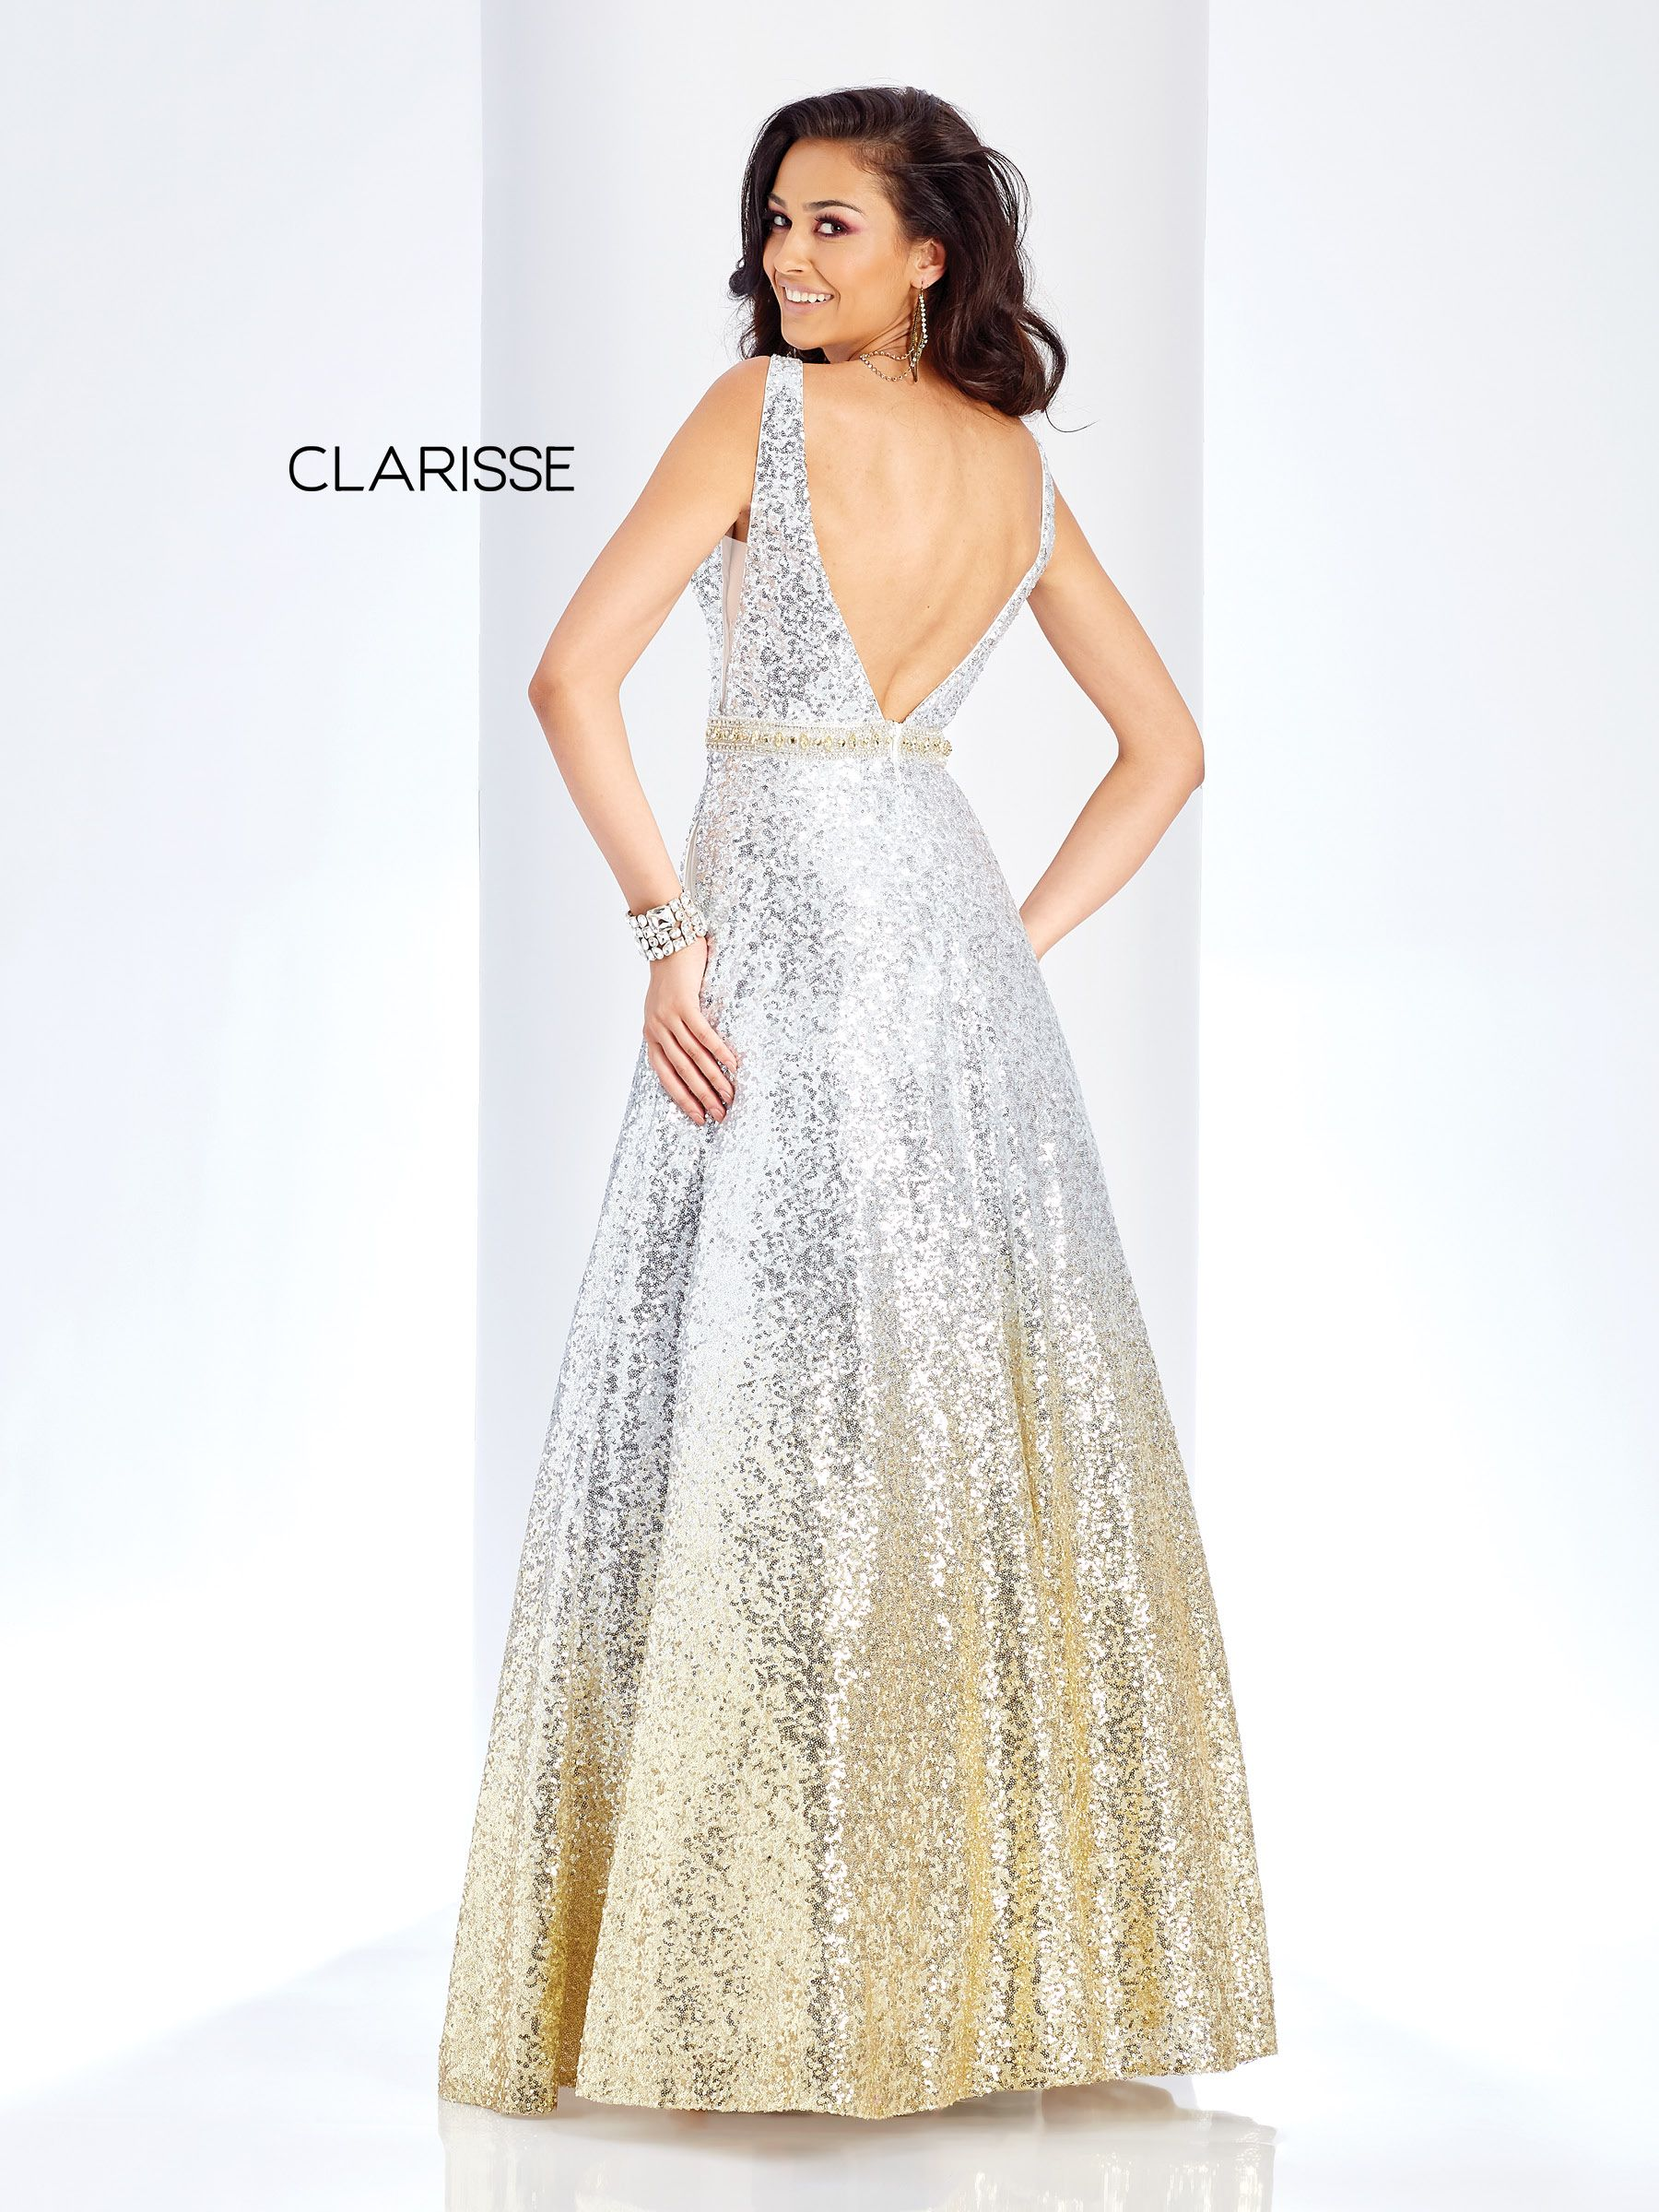 425e58208f2 3589 Silver Ombre Sequin Prom Dress With A Beaded Belt Clarisse